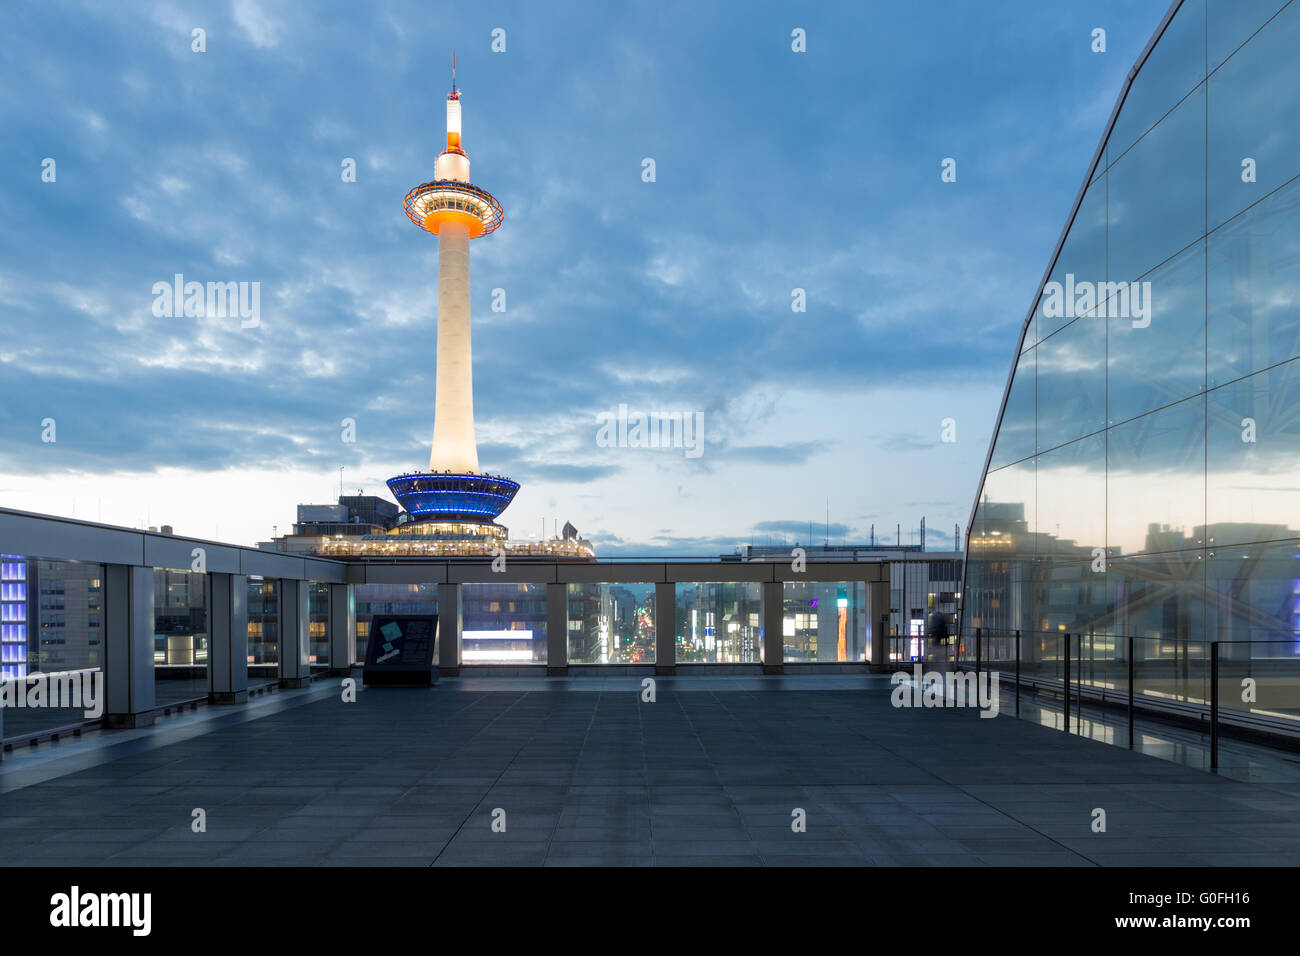 Dusk Lighted Kyoto Tower Blue Hour Evening Nobody - Stock Image